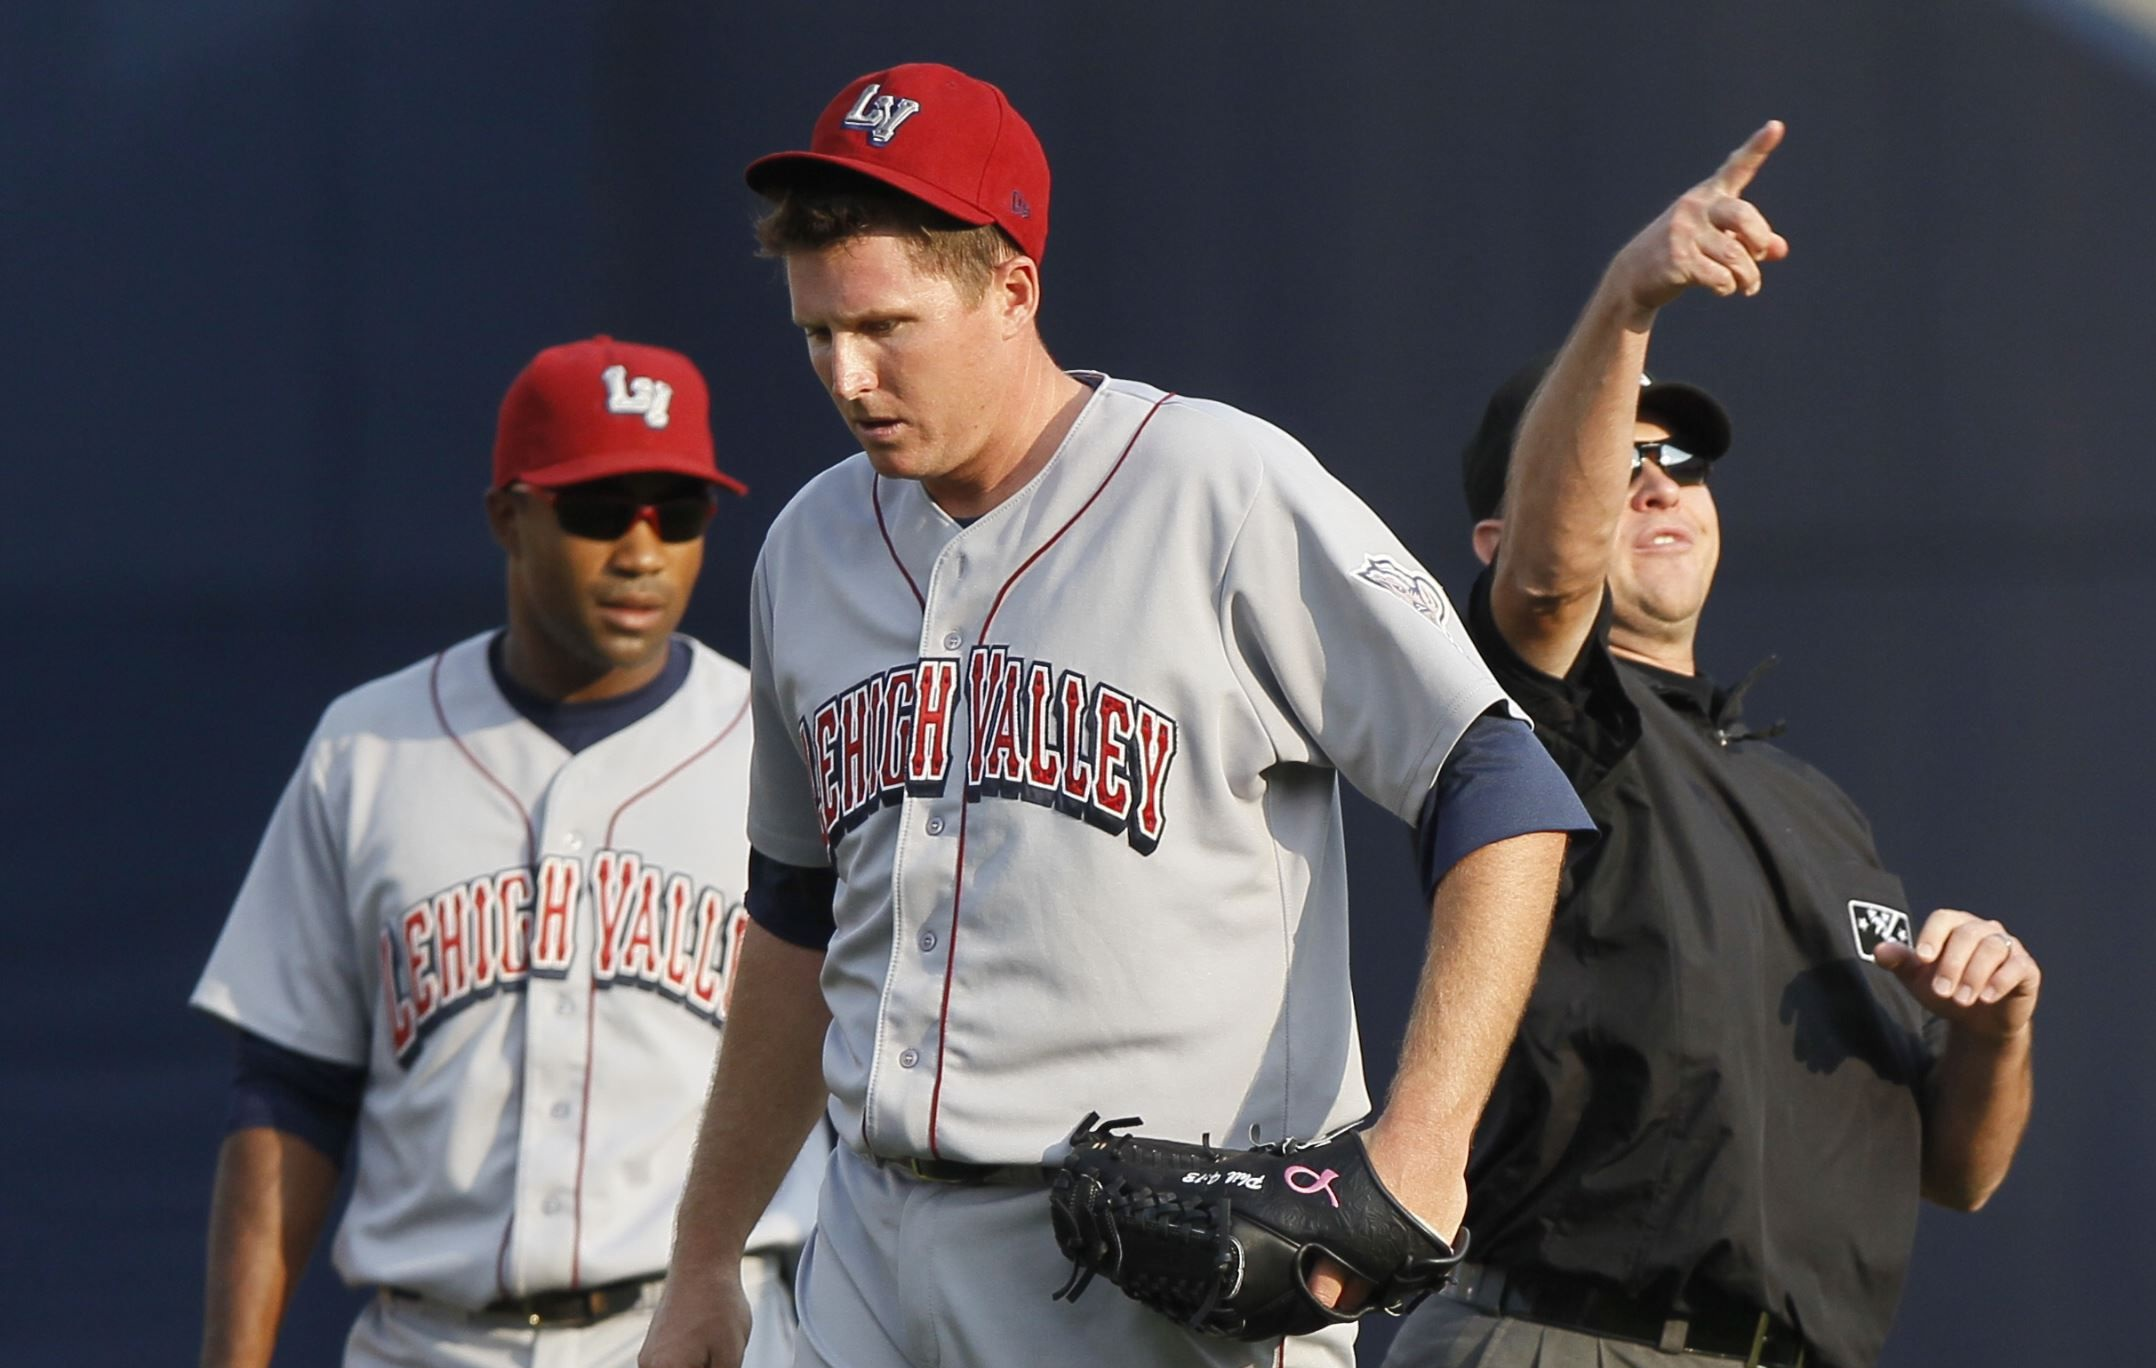 Lehigh Valley Ironpigs Pictures